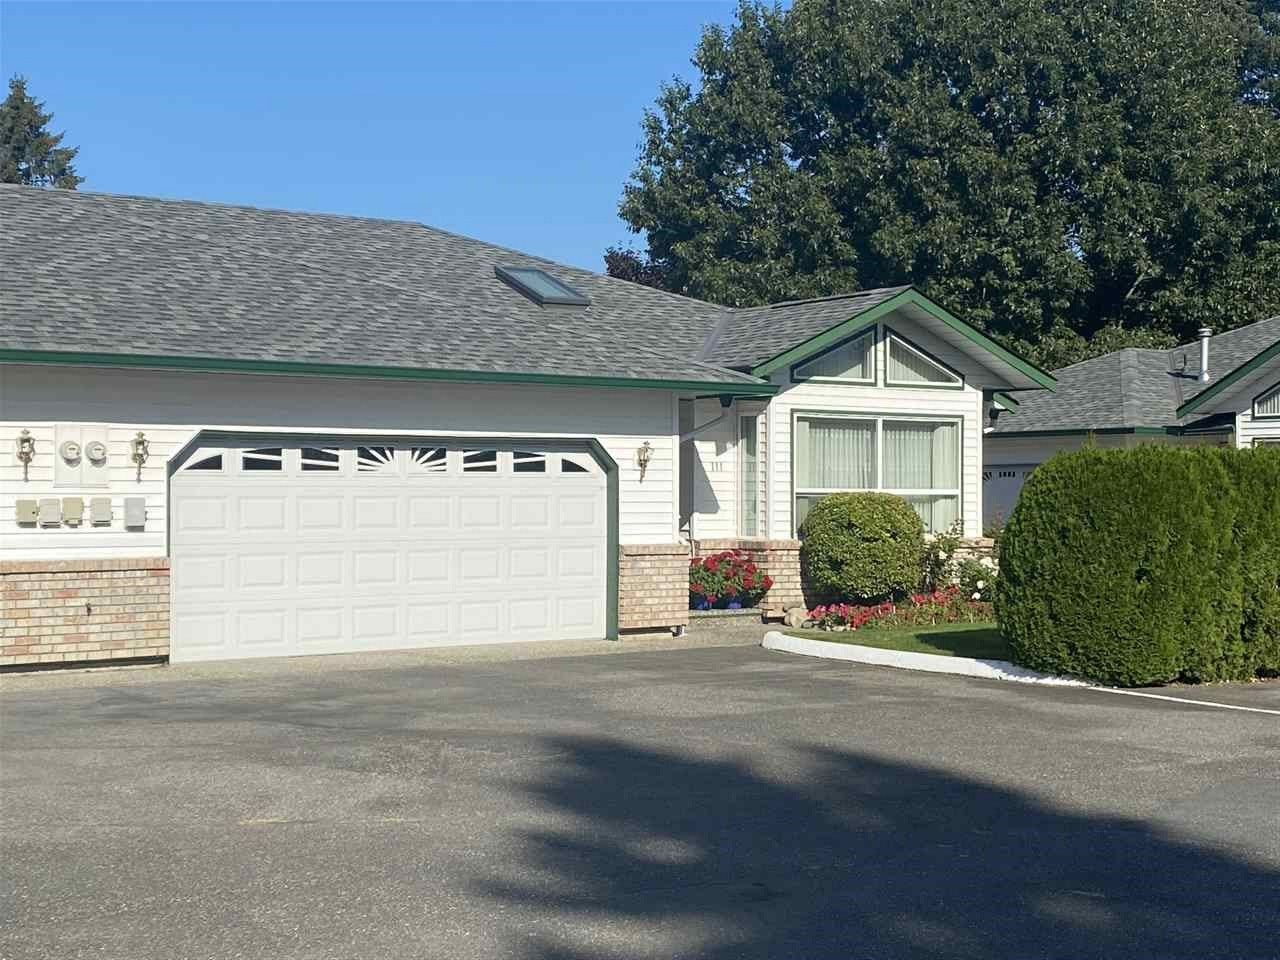 Main Photo: 111 9344 WOODBINE STREET in Chilliwack: Chilliwack E Young-Yale Townhouse for sale : MLS®# R2507540